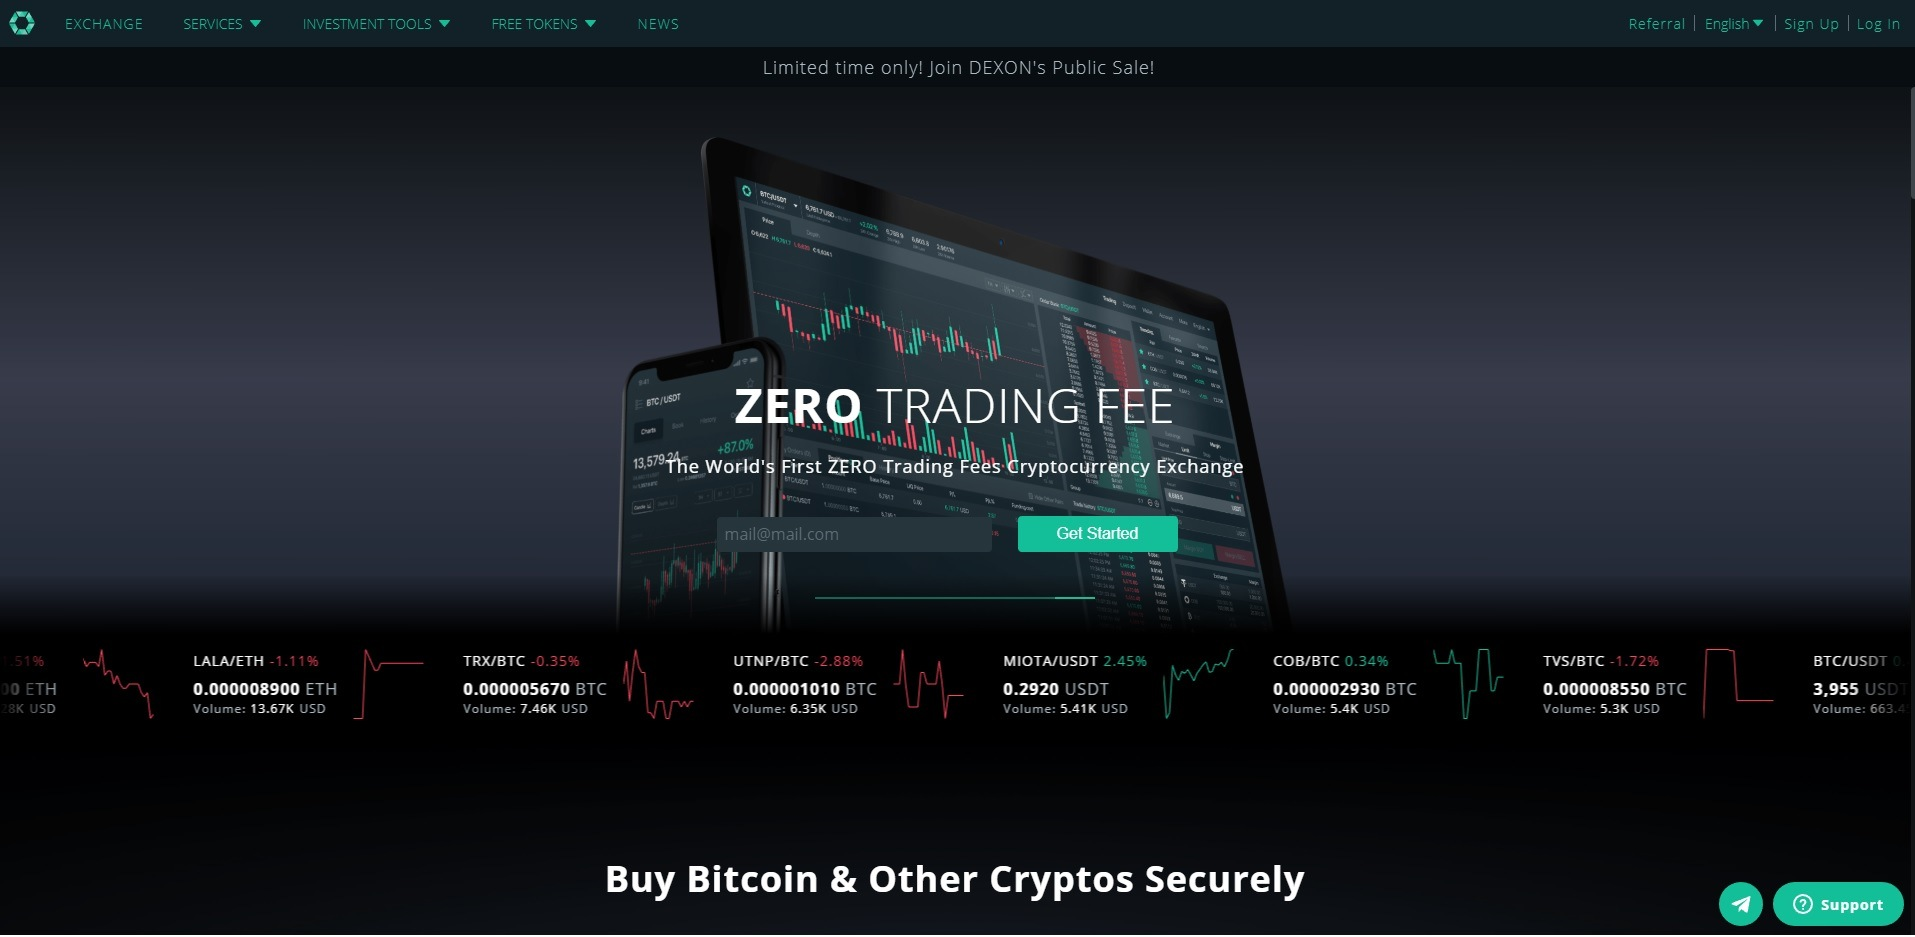 cobinhood buy bitcoin cryptos zero tradeing fee